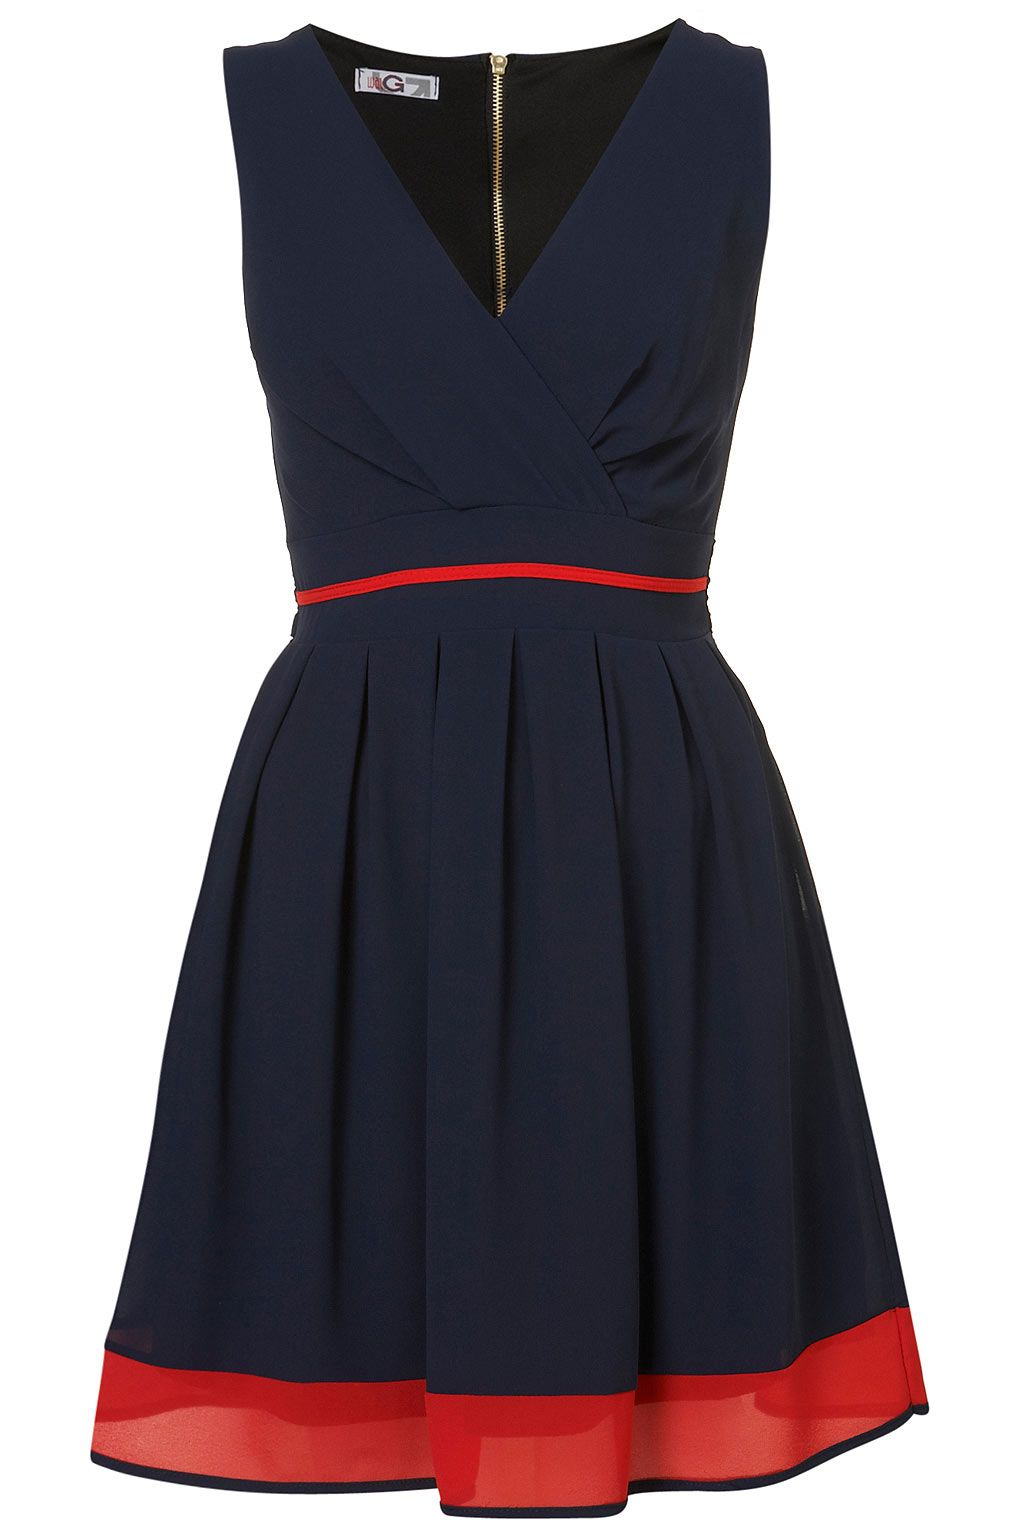 Cute dress for the grove pi pinterest navy navy blue and